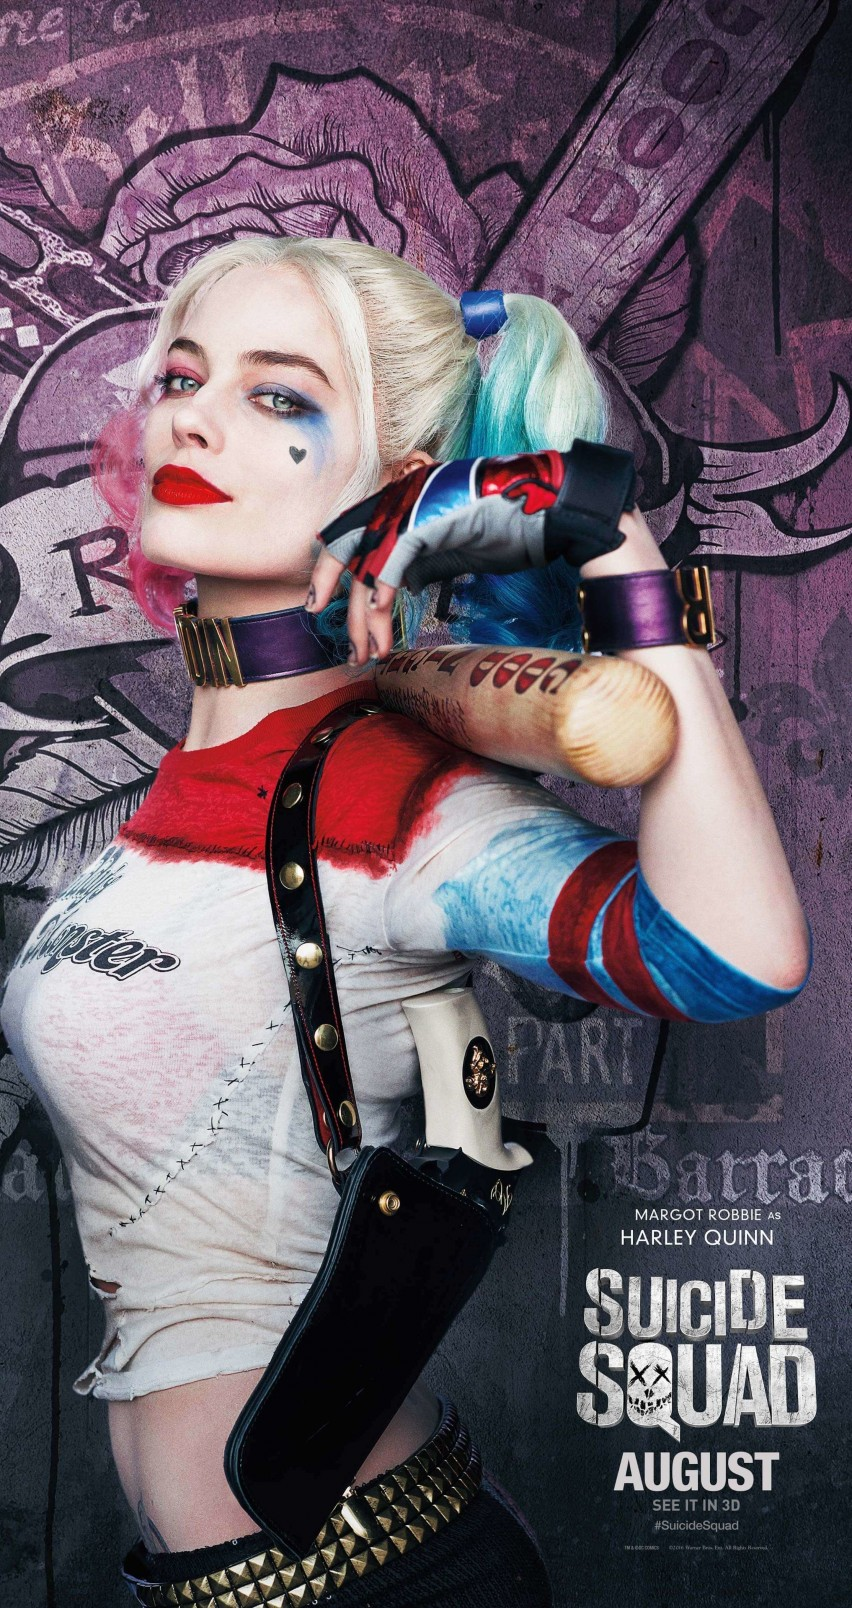 Harley Quinn - Suicide Squad Wallpaper for Apple iPhone 6 / 6s